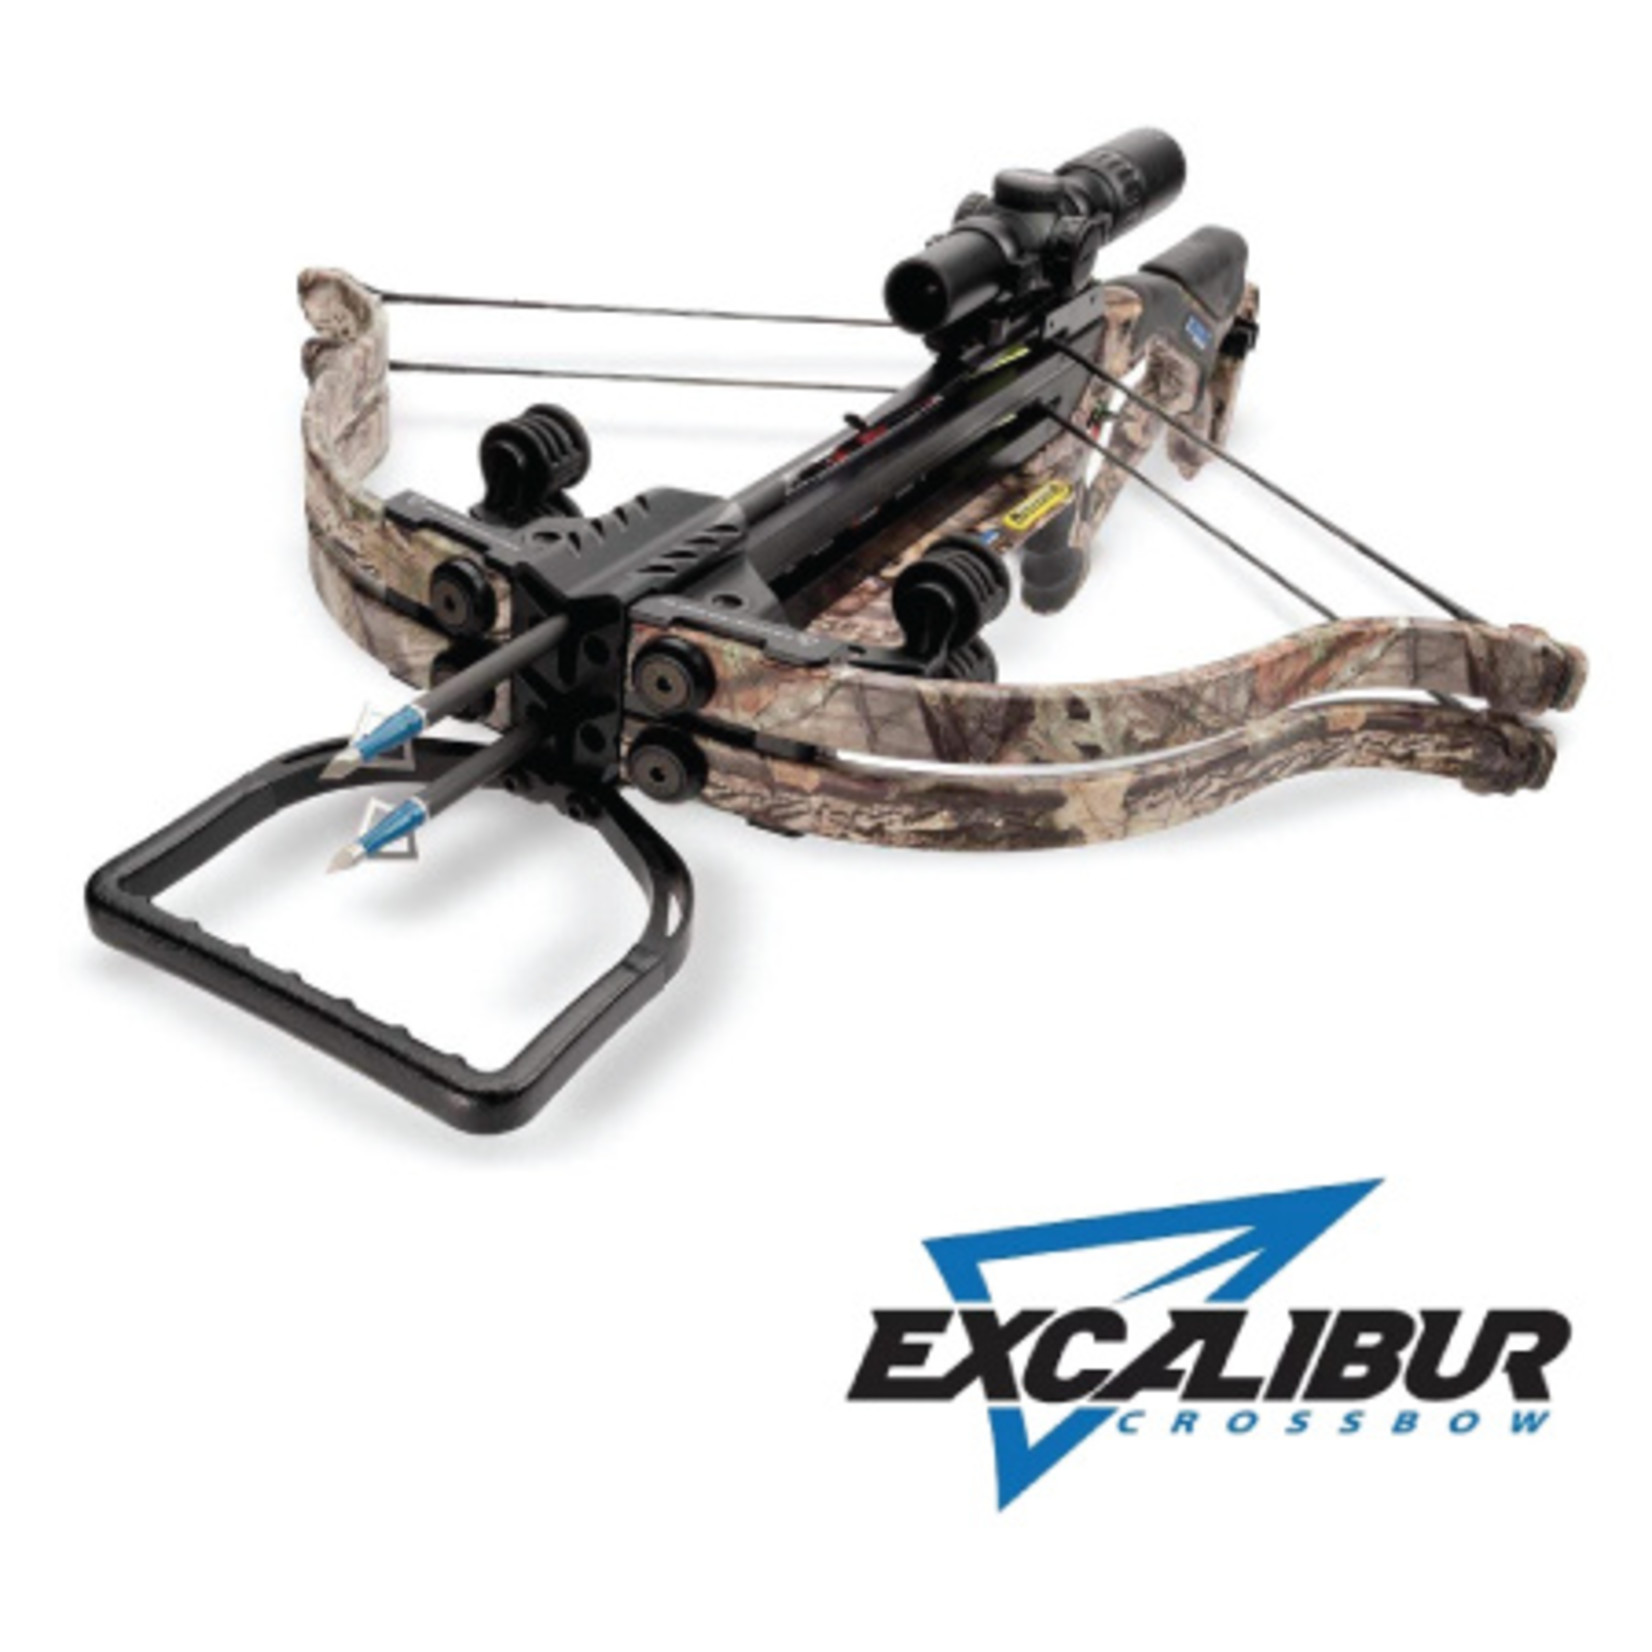 Excalibur Twinstrike Crossbow Package w/ Dualfire Technology  Break Up Country Camo